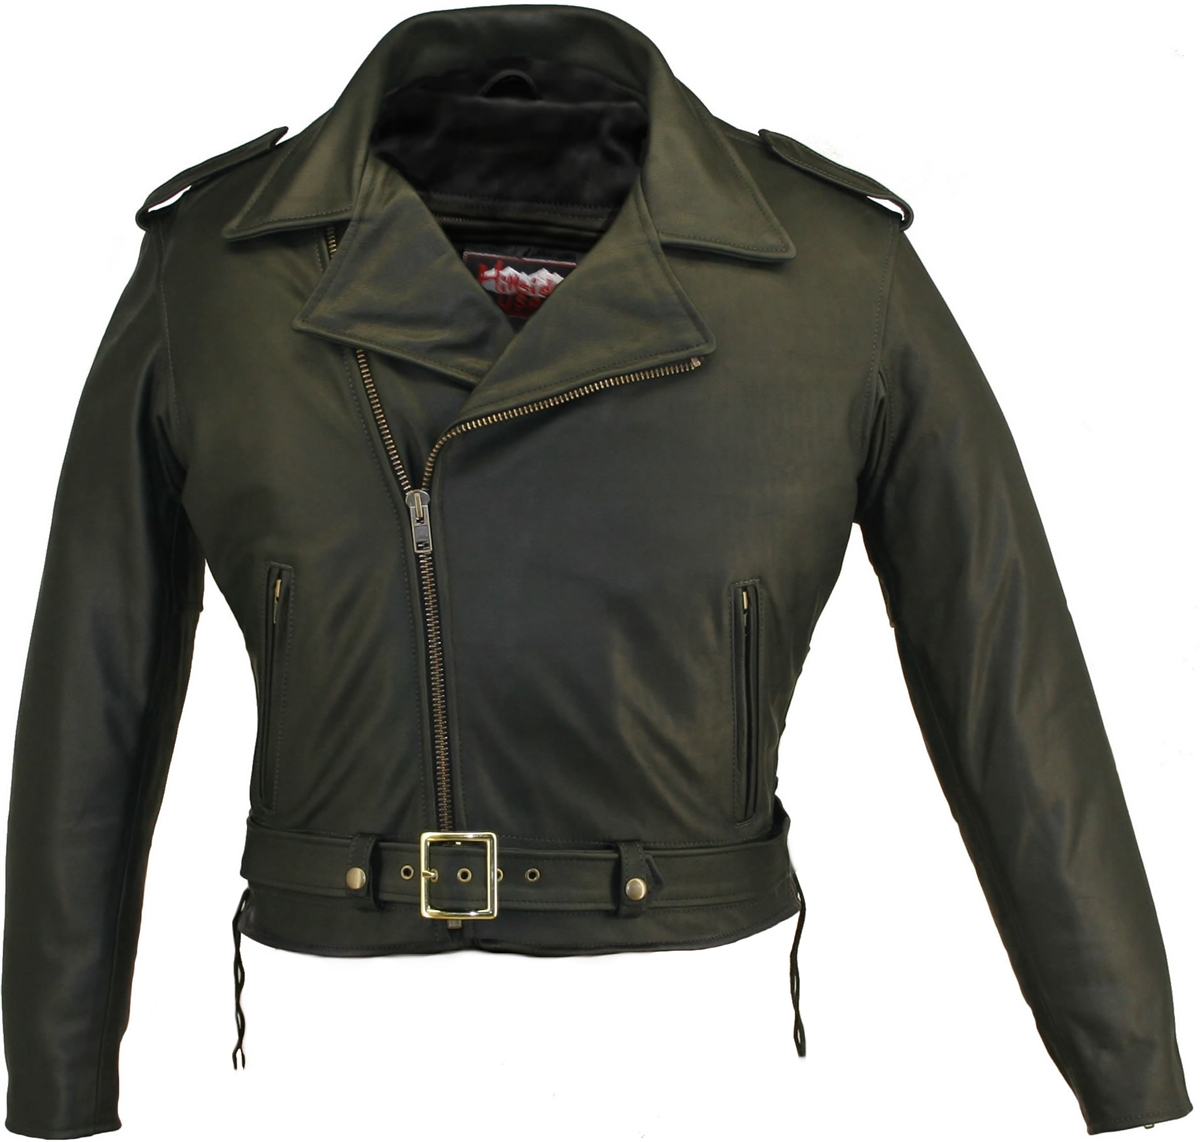 Men's Full Belted Biker Jacket. No bells, no whistles, just top quality leather designed in the classic biker image. This Jacket is loaded with riding features starting with an unique 1.6-1.8 mm (4-4 1/2 oz.) soft, supple, and thick Cowhide Naked Leather